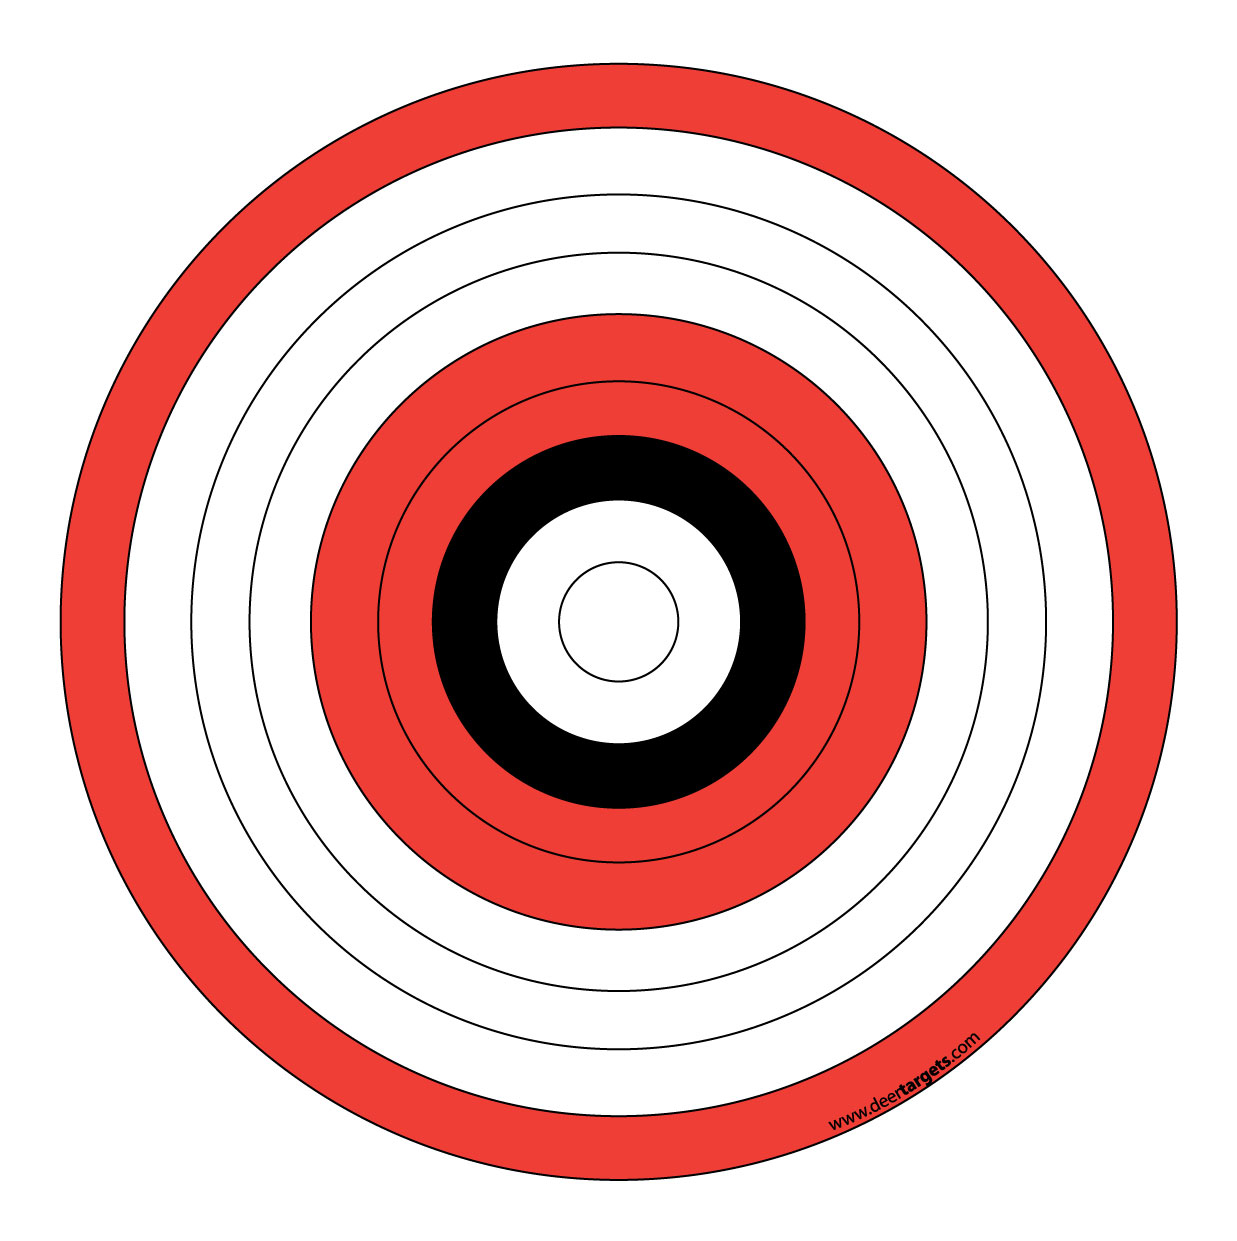 It's just a picture of Légend Printable Archery Targets